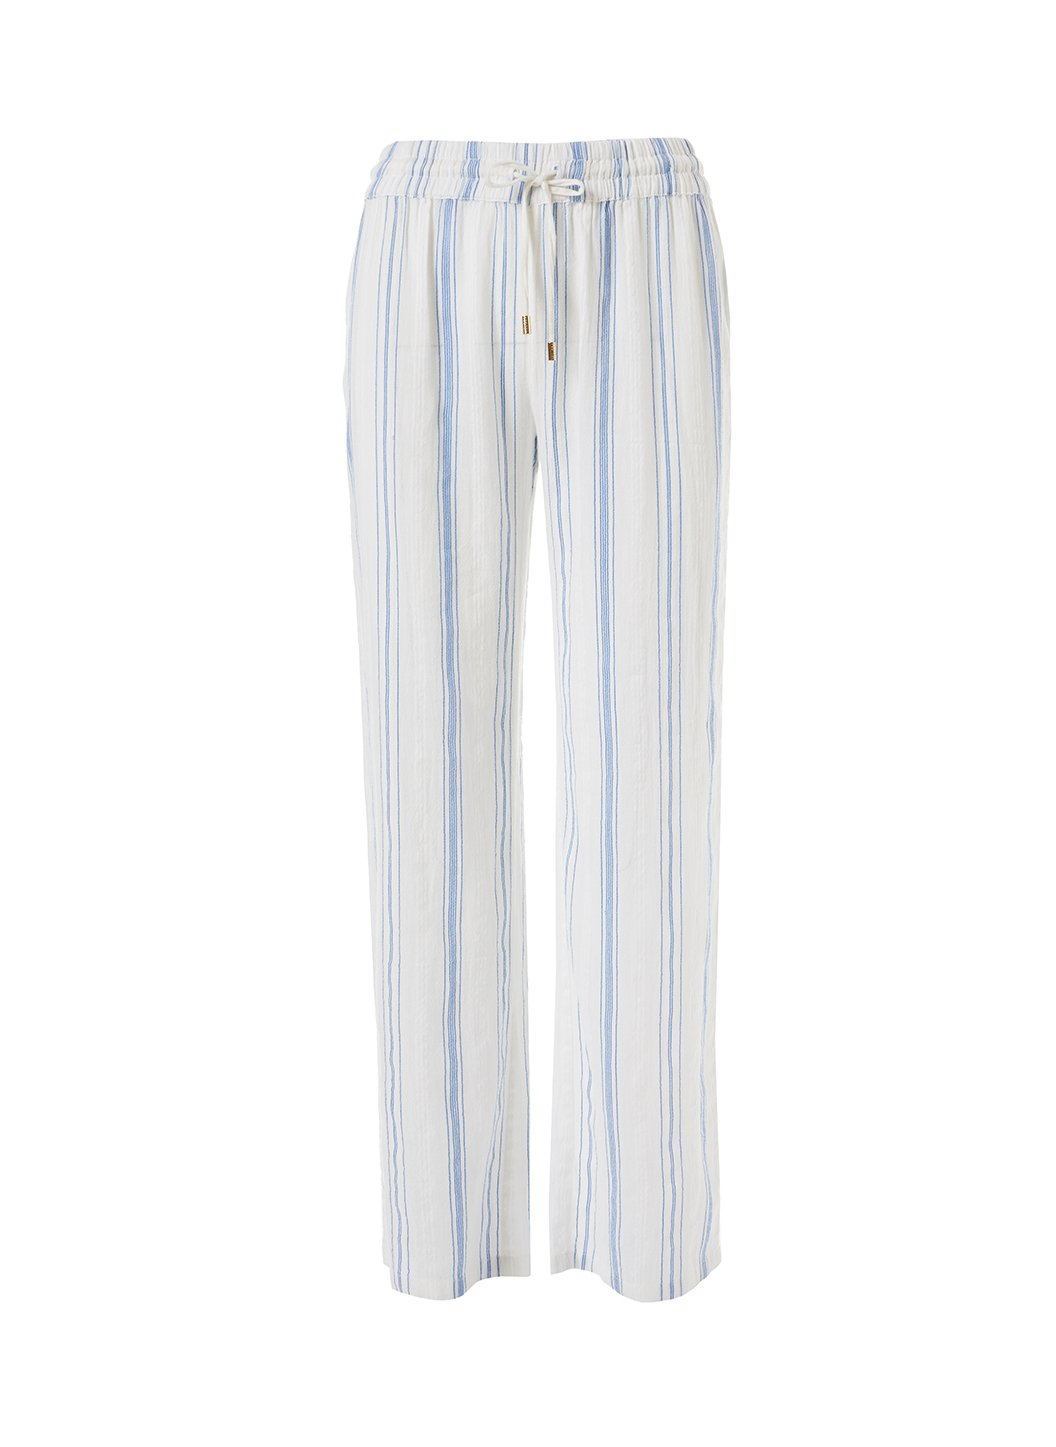 krissy blue stripe straight leg trouser 2019